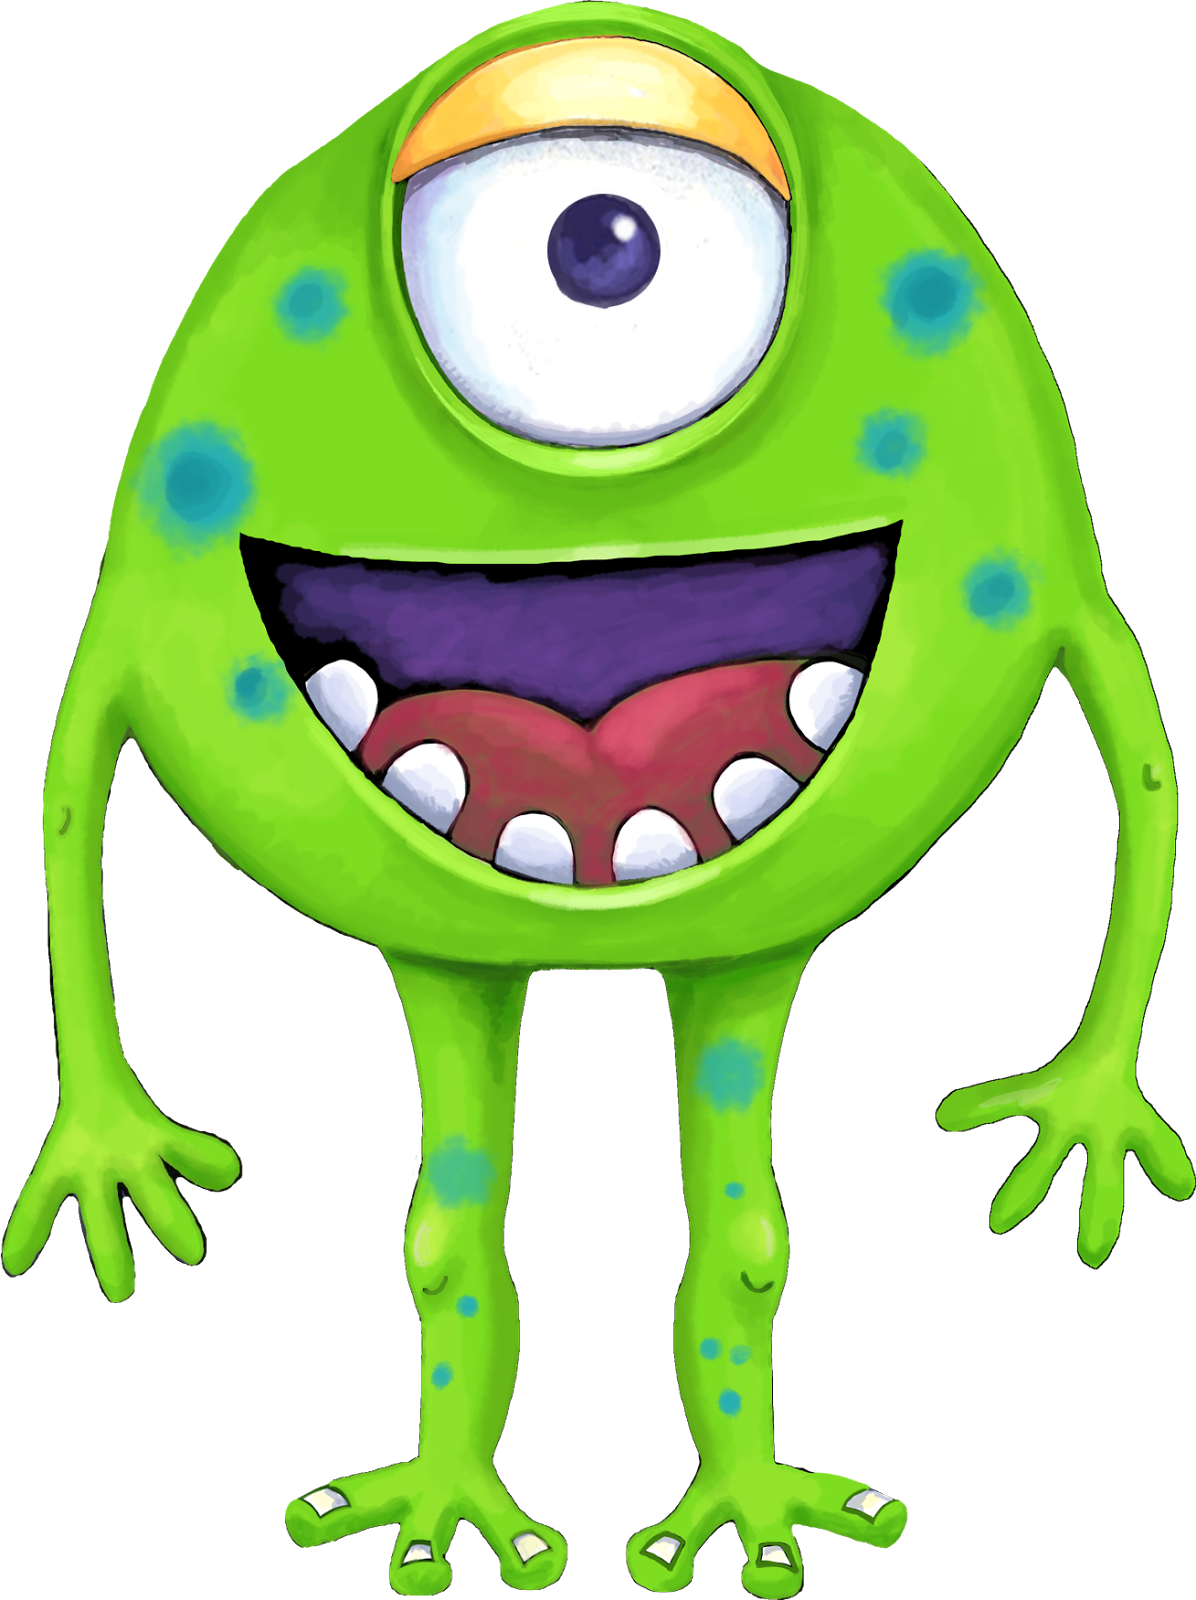 Your Free Art: Cute Blue, Purple and Green Cartoon Alien Monsters ...